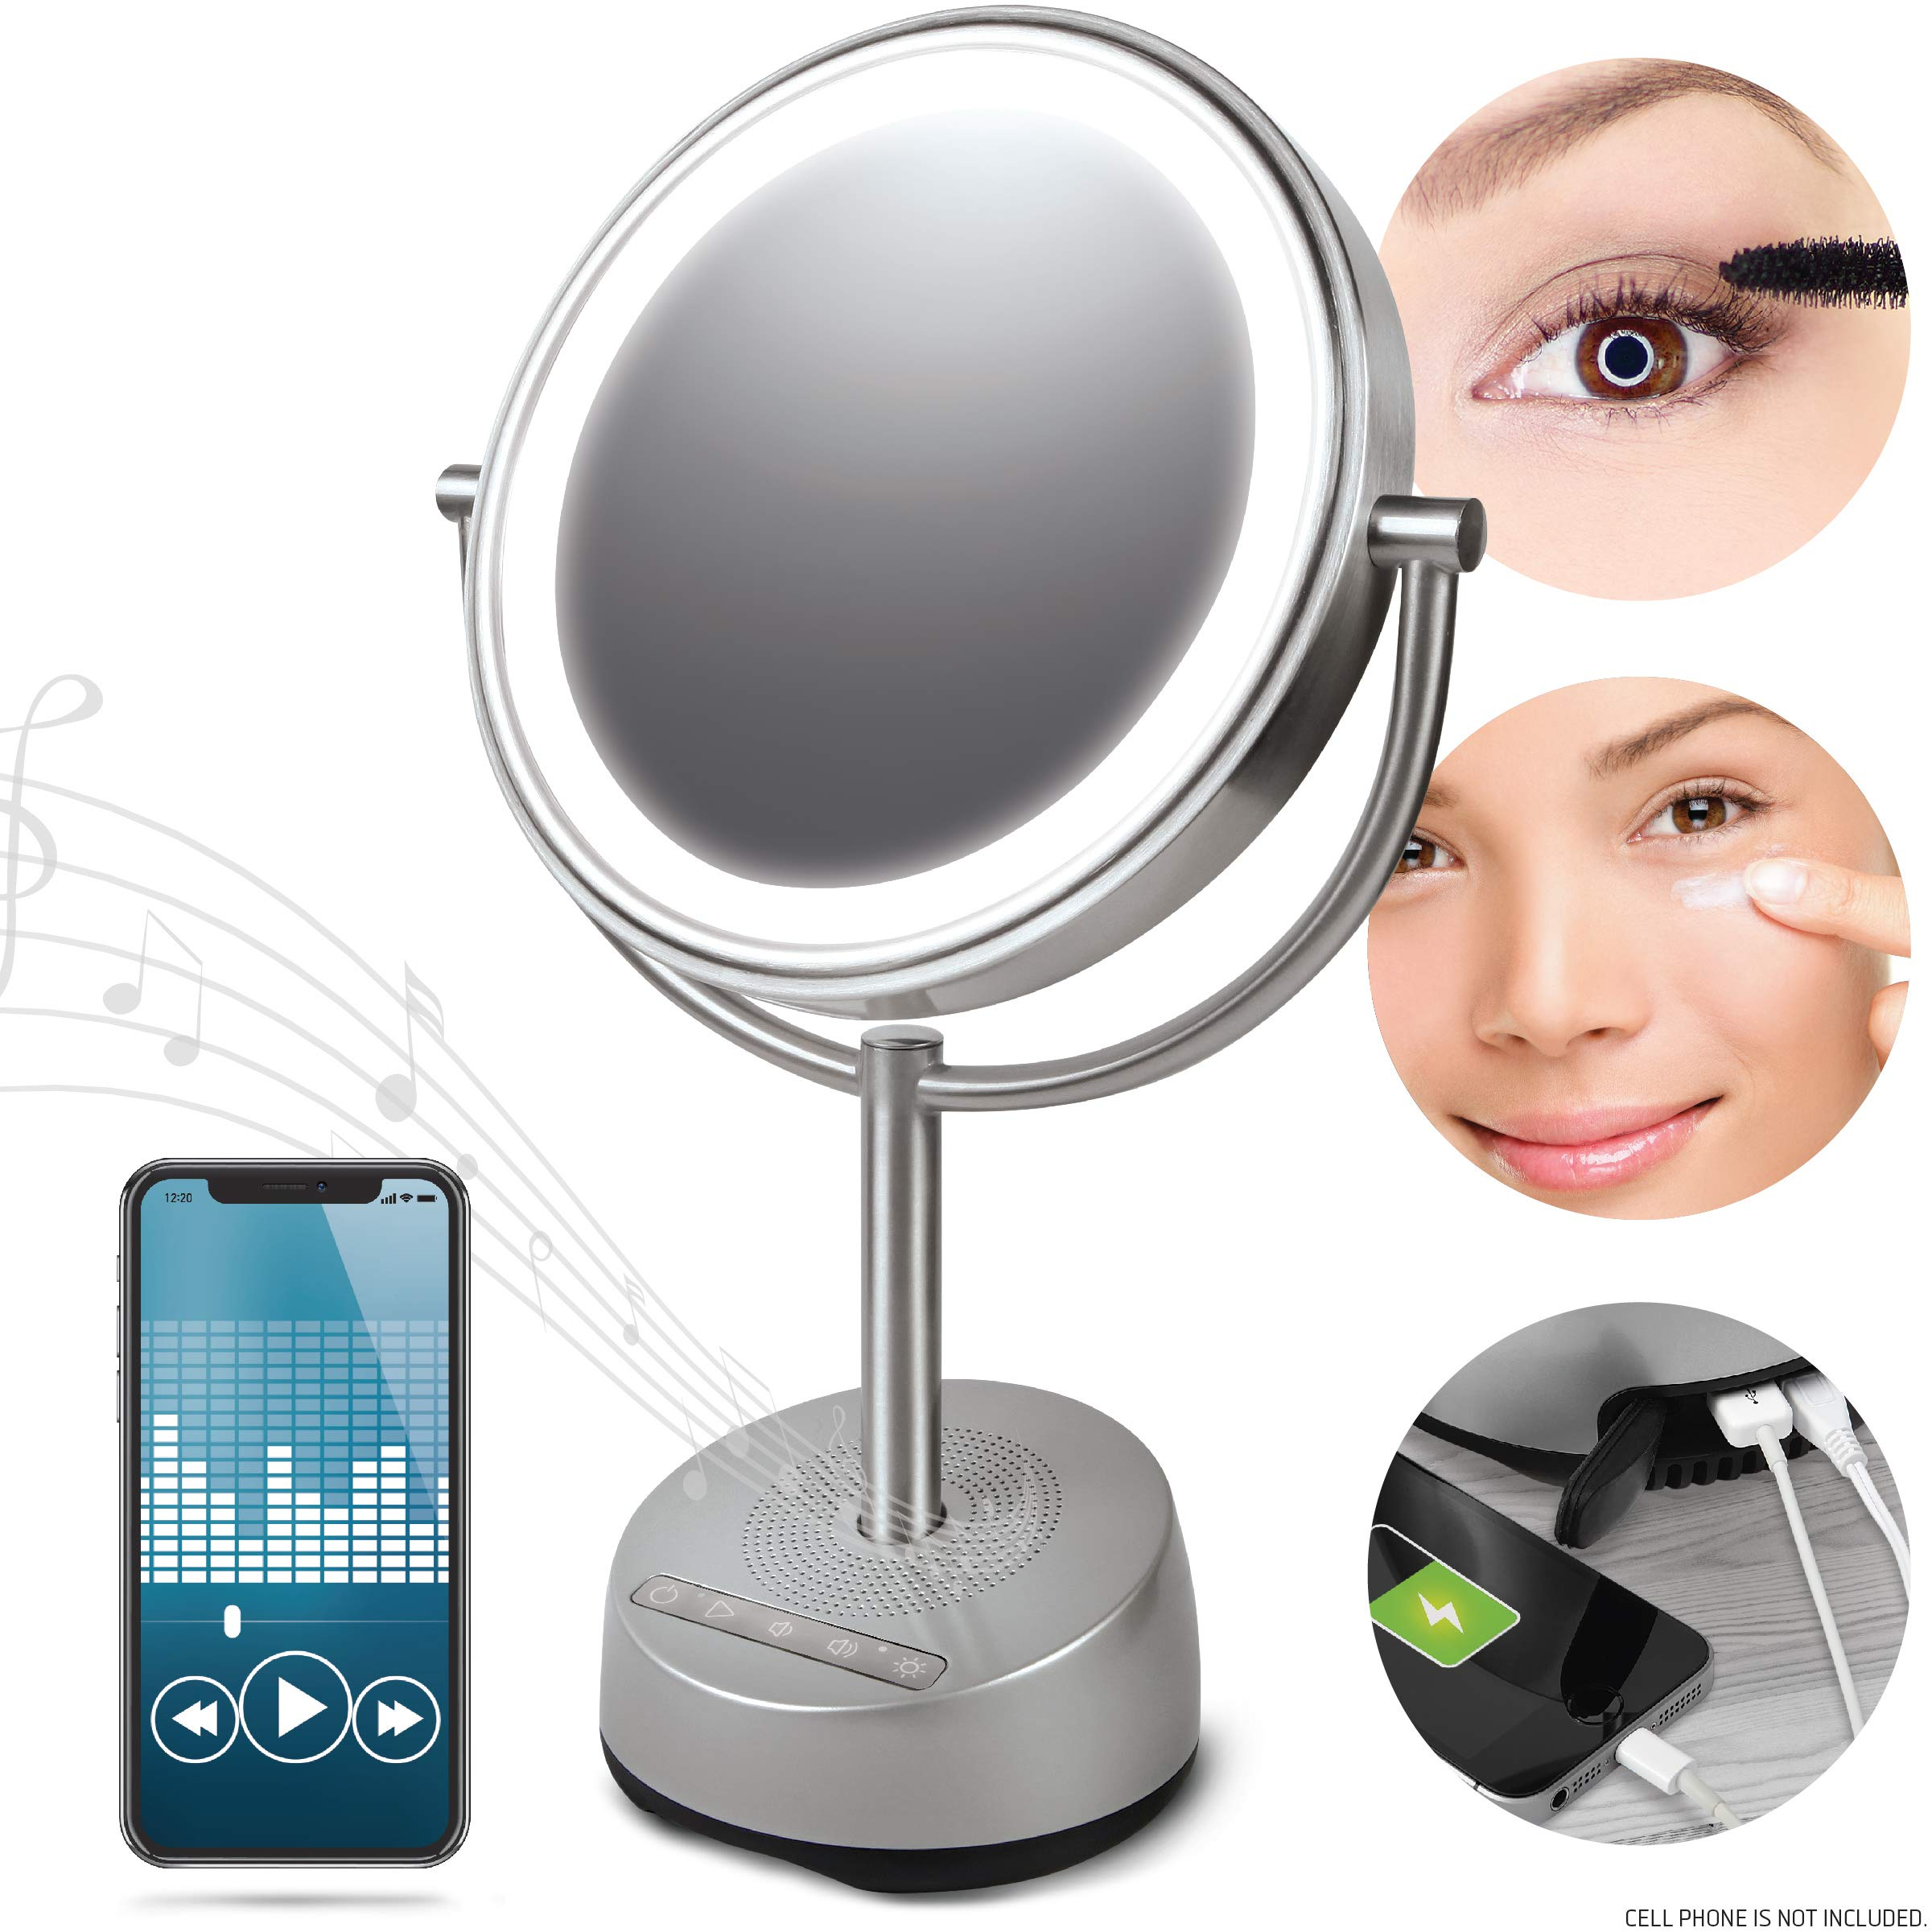 SHARPER IMAGE Bluetooth Vanity Makeup Mirror with Wireless Music Streaming and LED Light, Double-Sided 7x/1x Magnification, Phone Charging Port, Smartphone Compatible with Voice Activation by Sharper Image